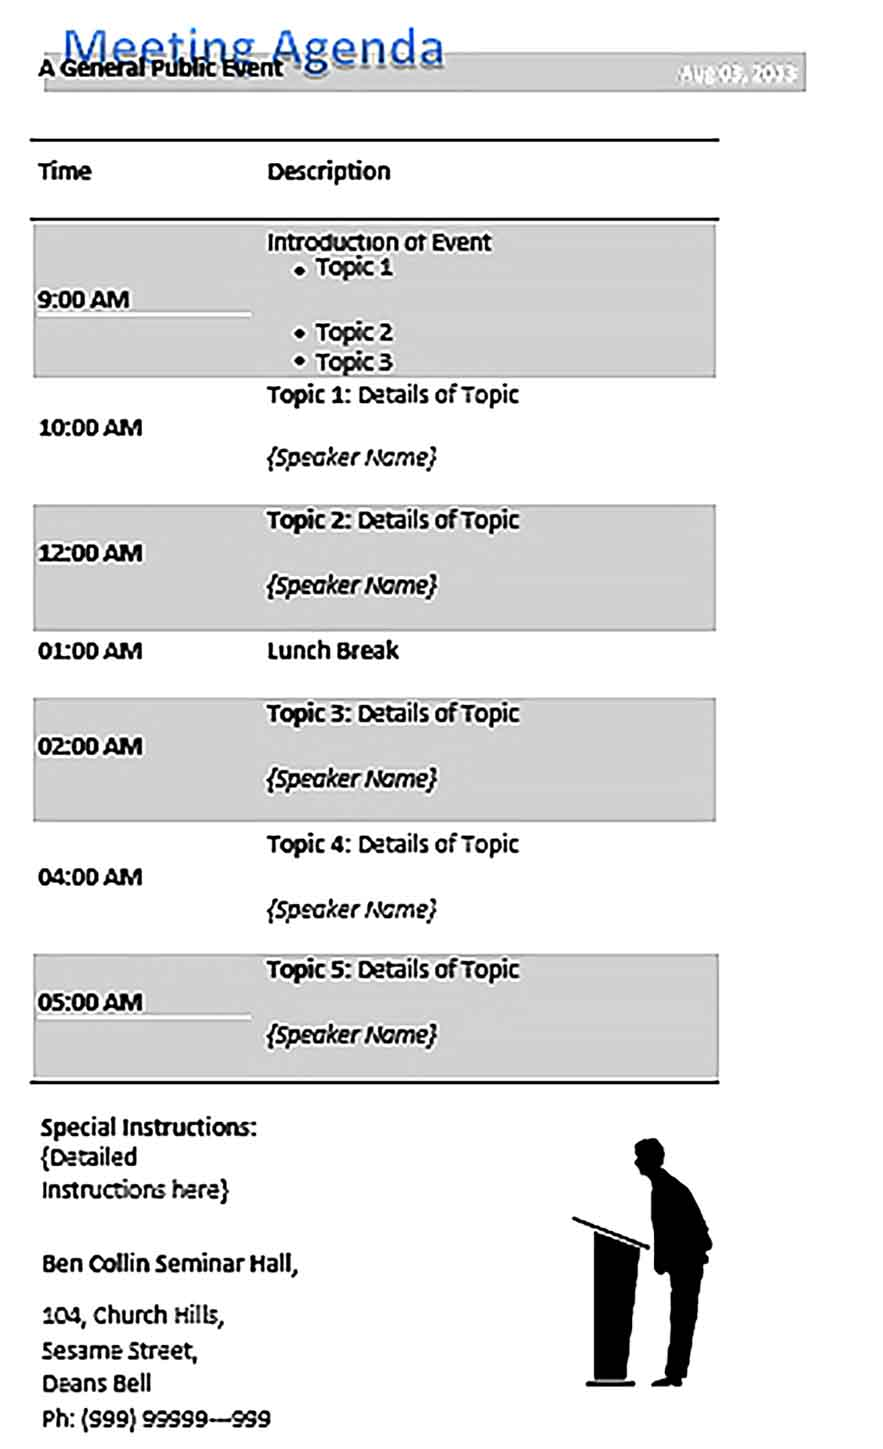 Template Meeting Agenda Public Event Conference Schedule Sample